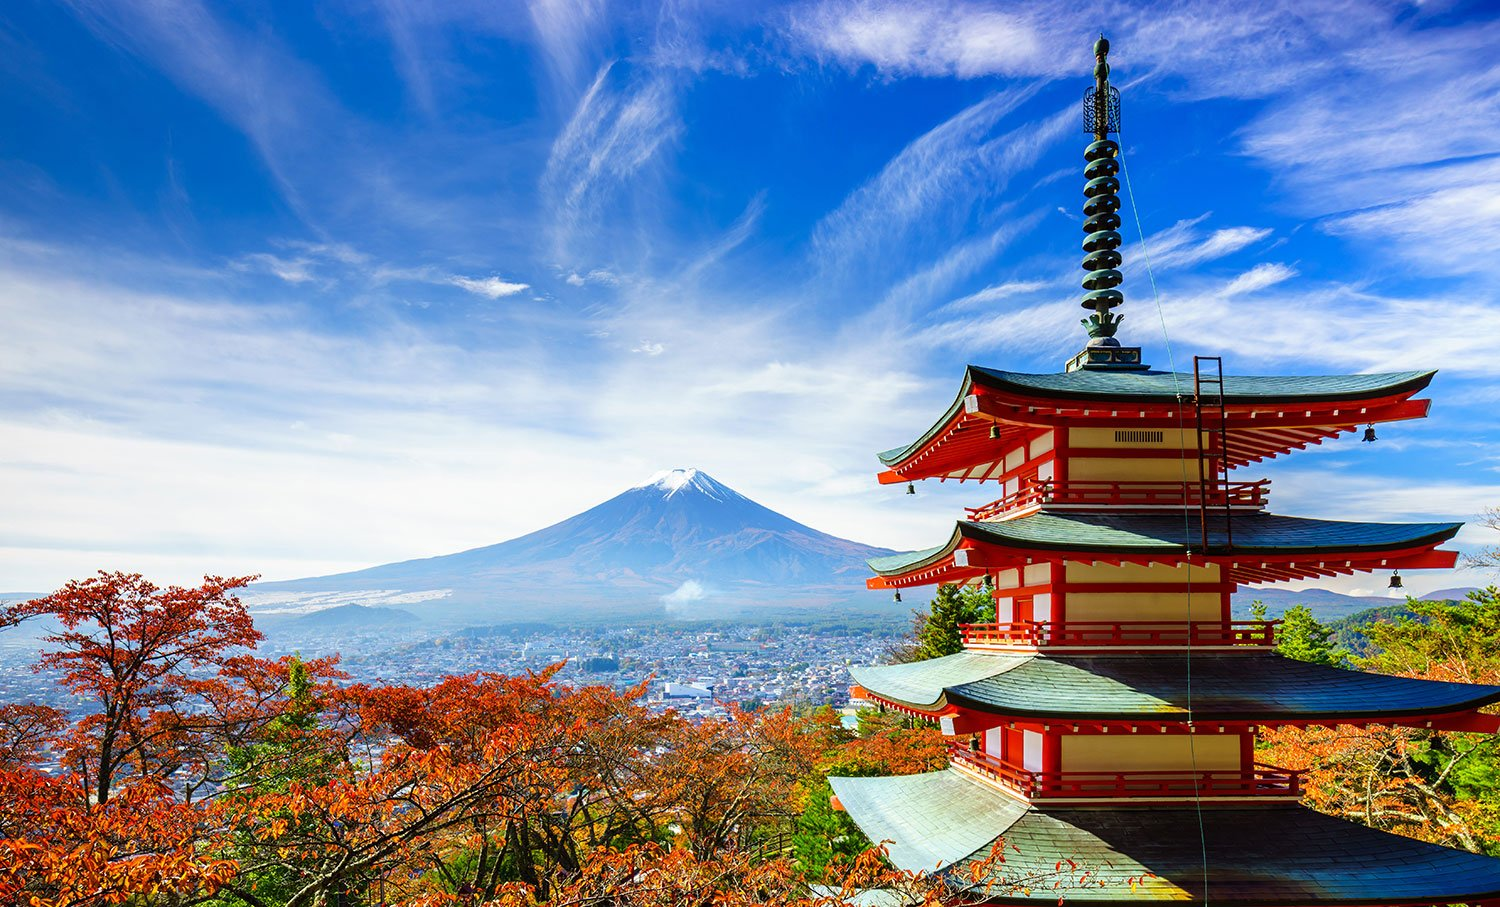 Traditional multi-tiered building with a mountain in the background on a sunny day in Japan